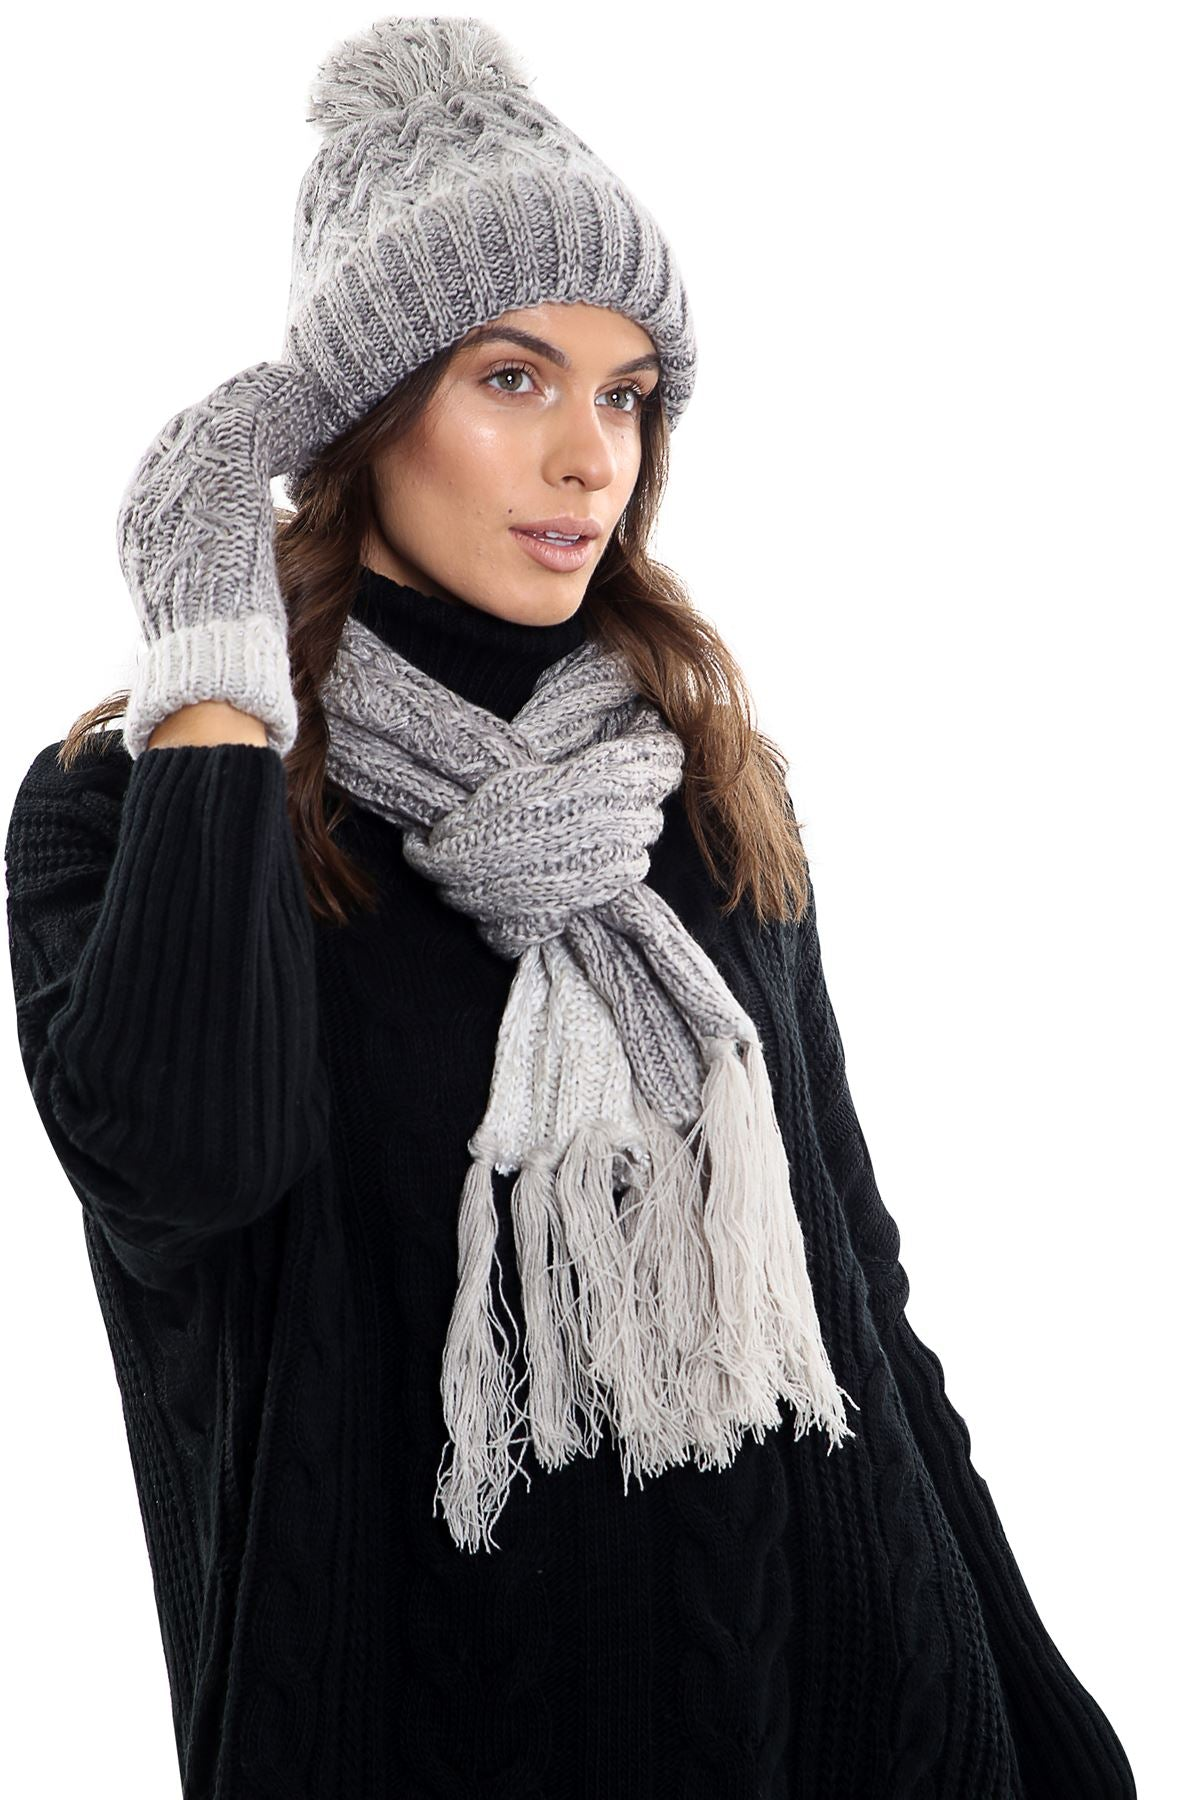 2884b3e548b75a Womens LHTSF172 Wooly Thick knitted Hat, Scarf and Glove set - Grey & –  ViviFashion